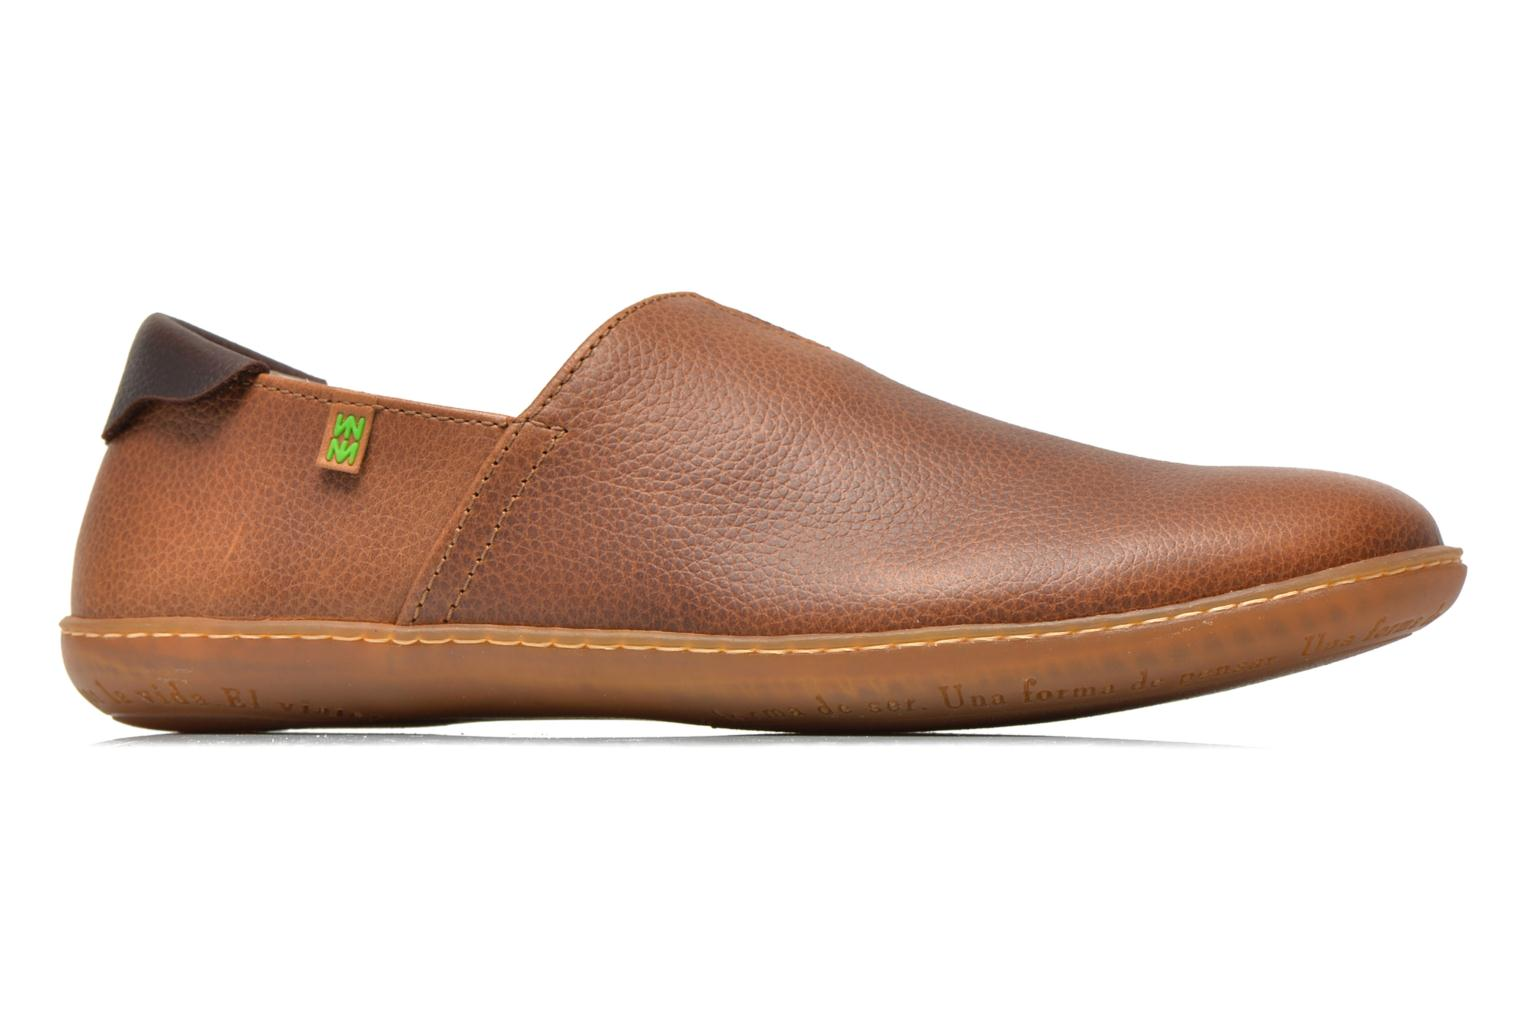 Viajero Moc N°275 Wood-Brown